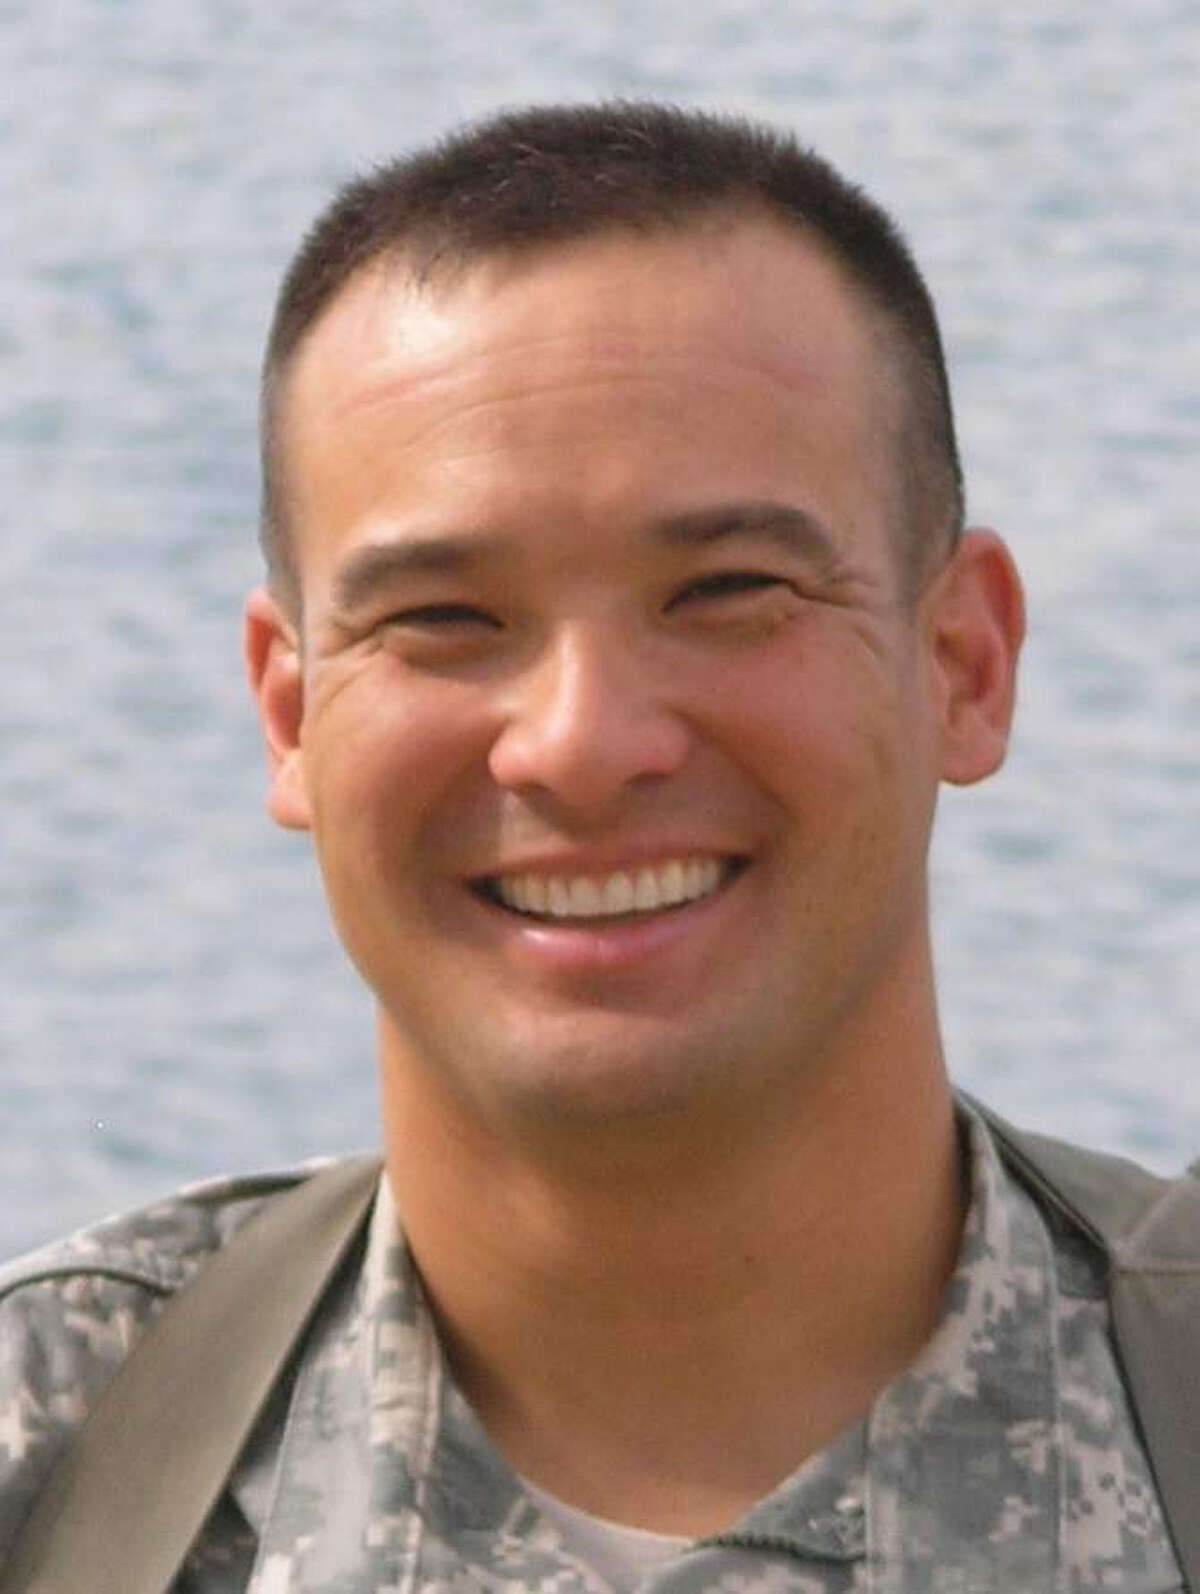 Chief Warrant Officer William Keith is the safety officer for U.S. Army North at Fort Sam Houston.